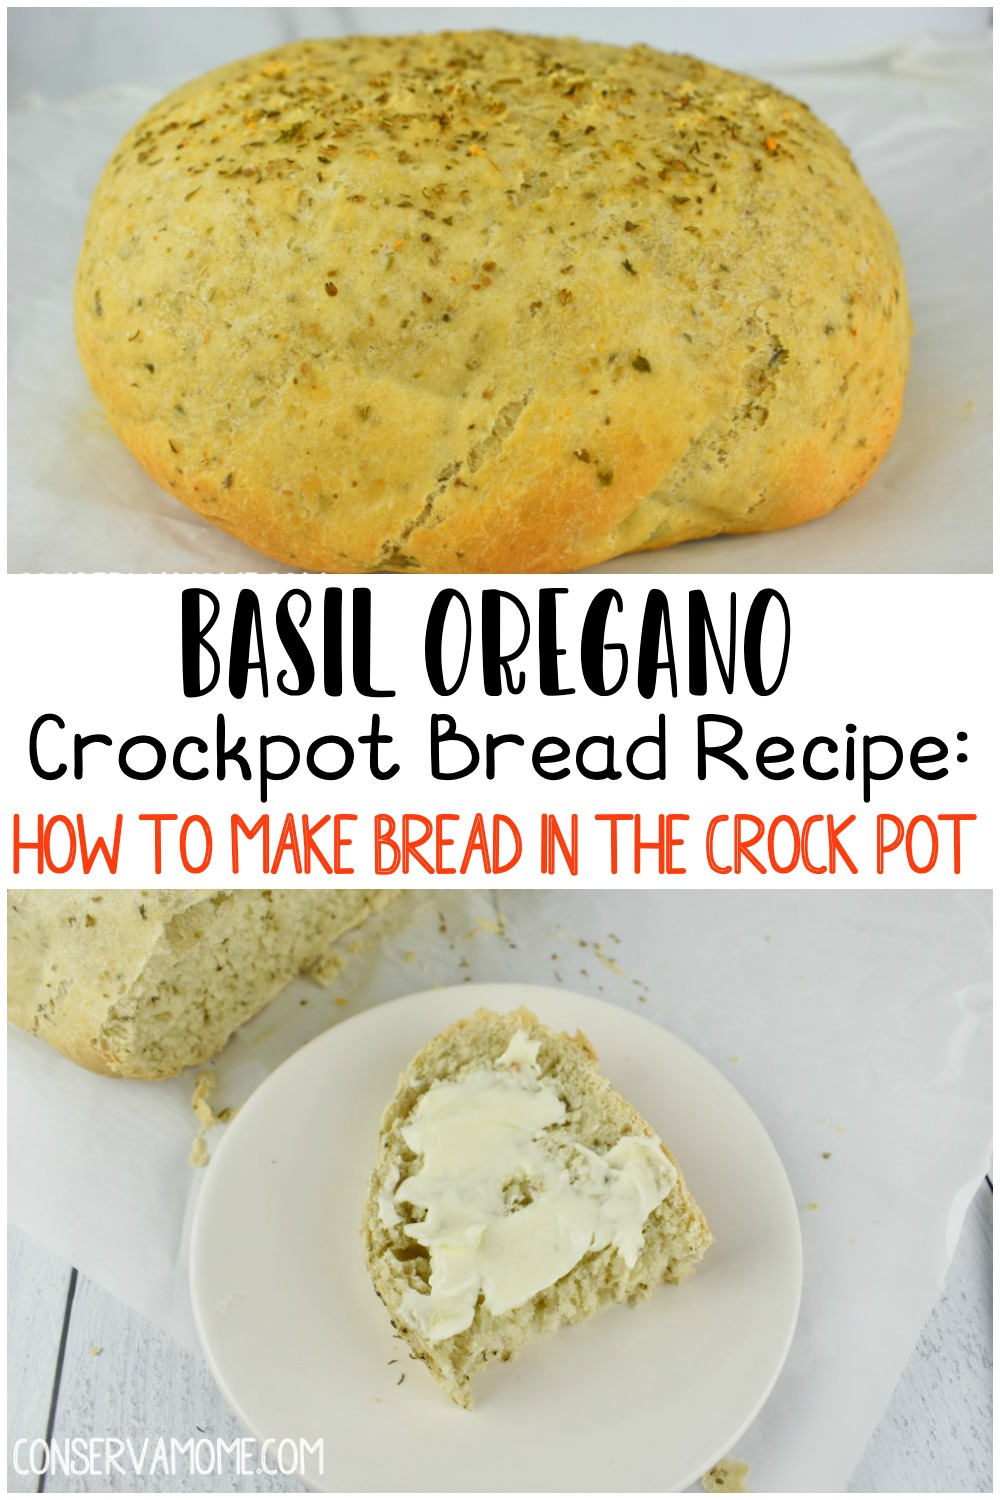 How to make crockpot bread